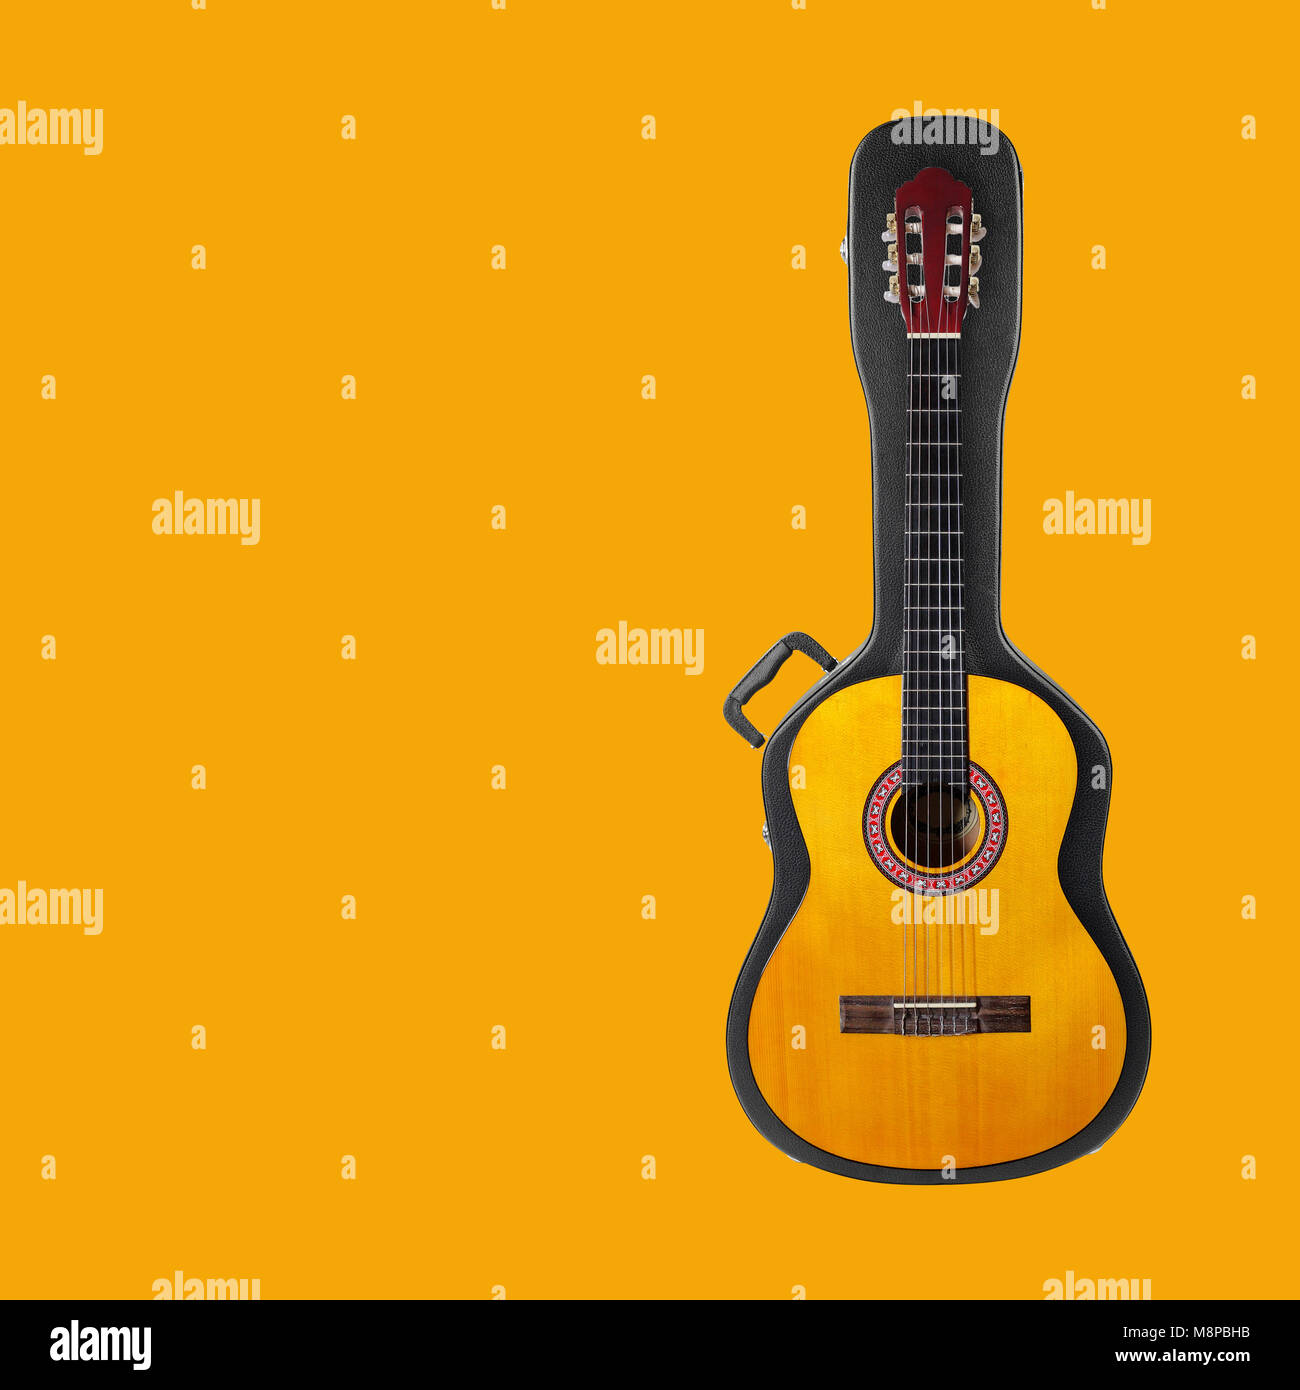 Musical instrument - Acoustic classic guitar from above on a hard case on a yellow background. Stock Photo